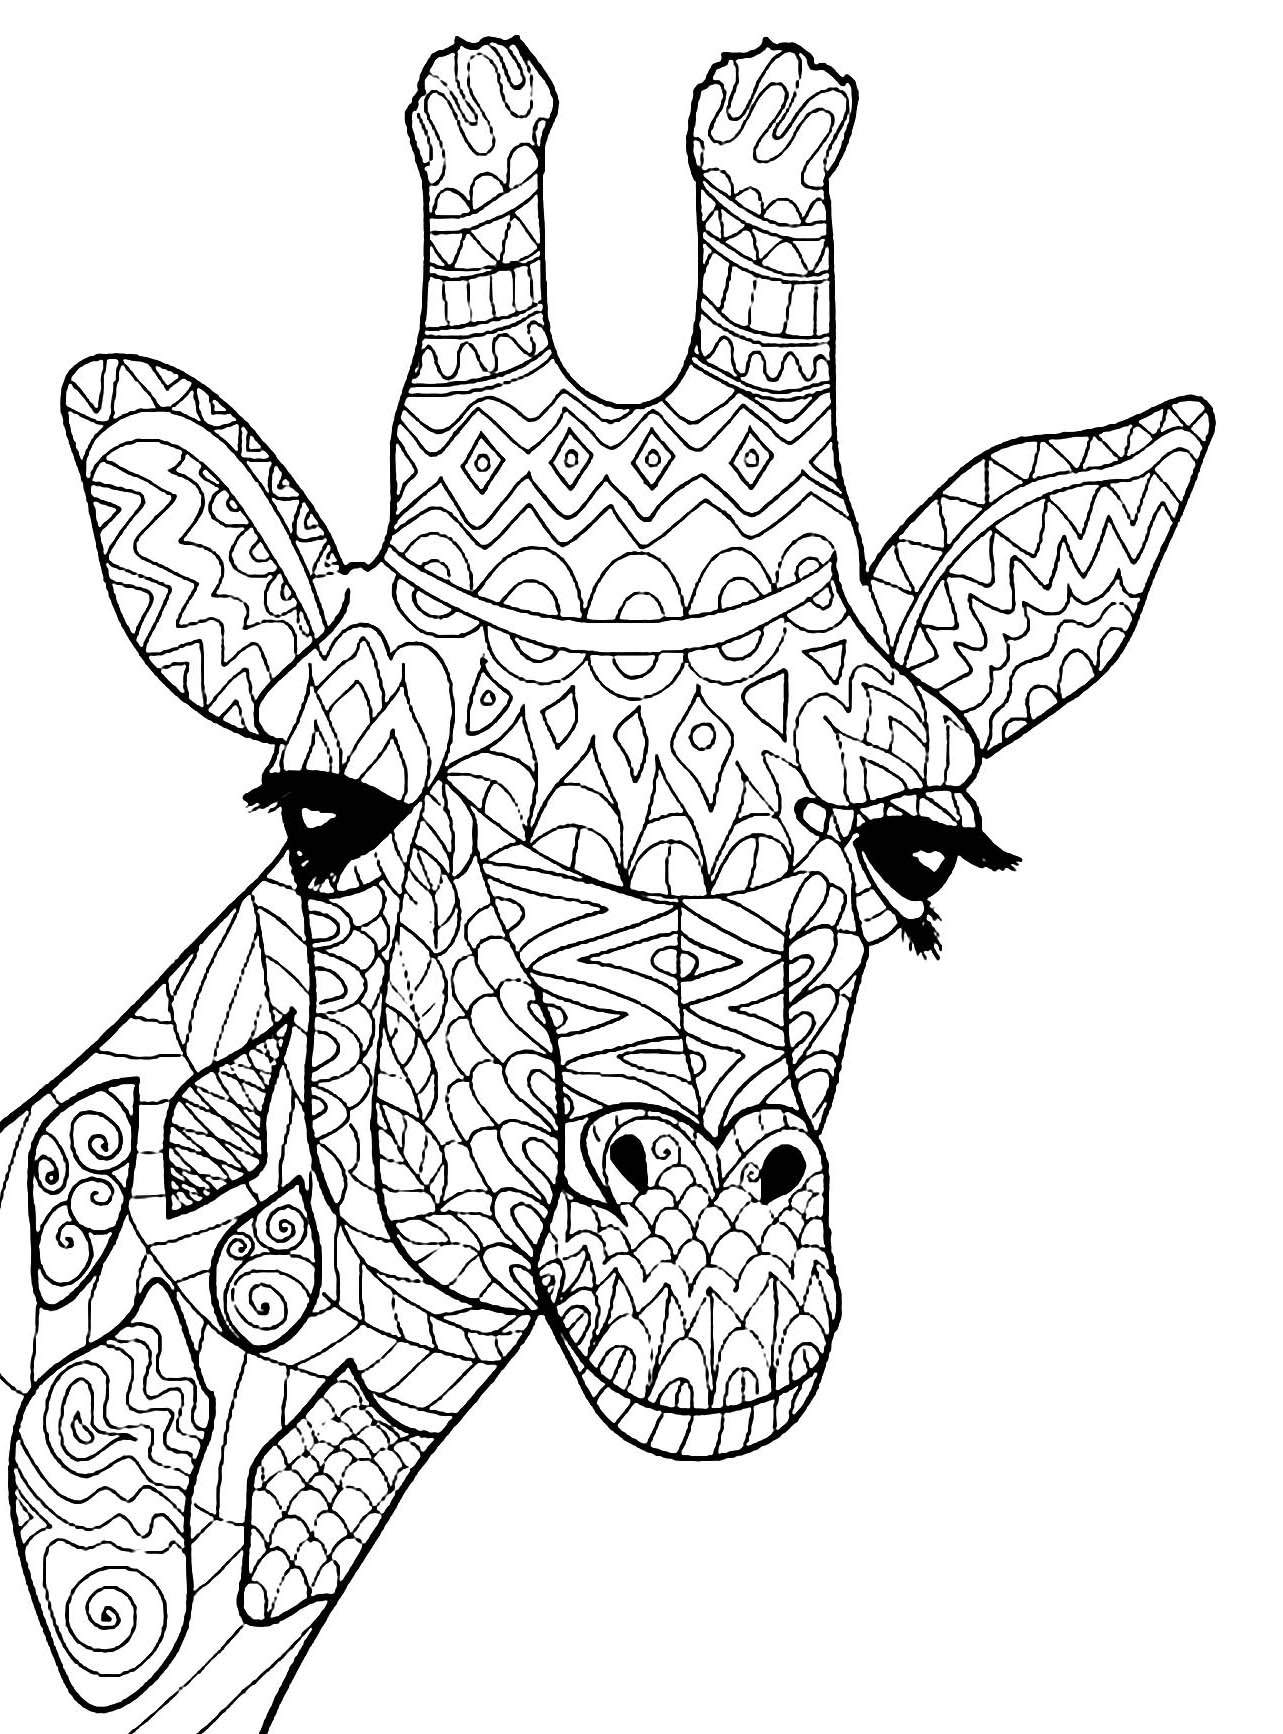 Giraffes for kids - Giraffes Kids Coloring Pages